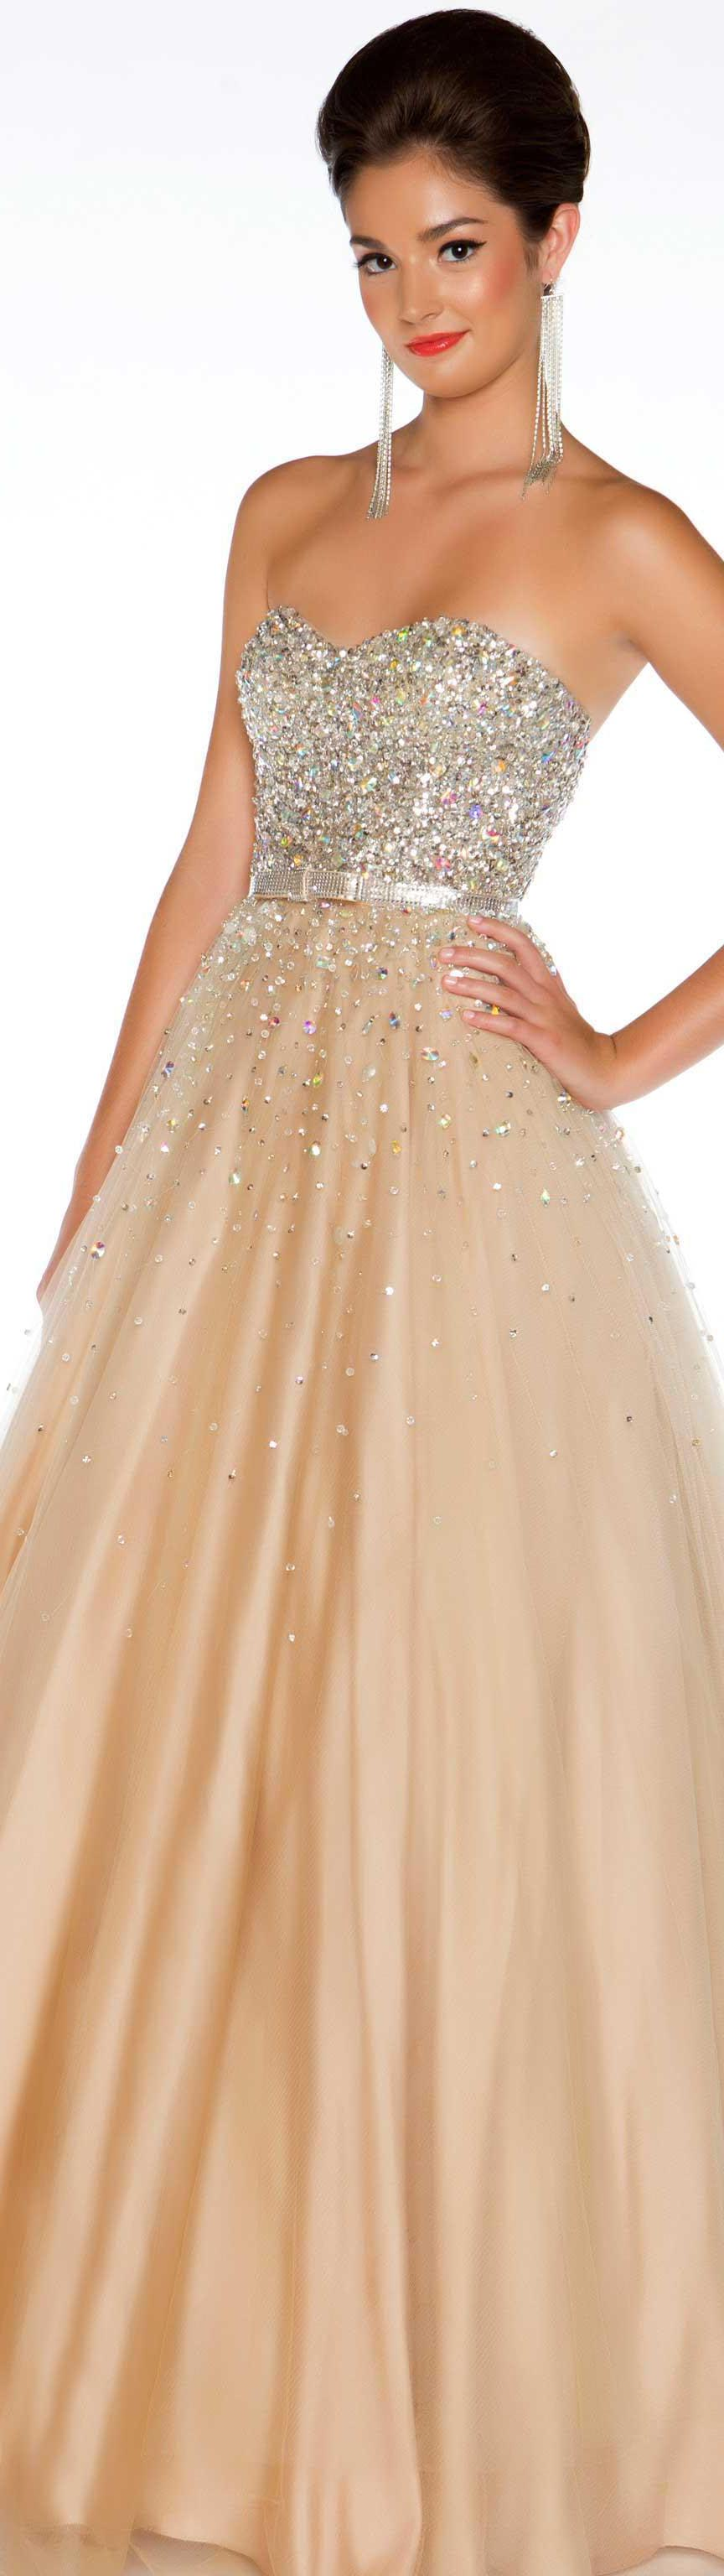 Mac duggal couture dress nude silver strapless glitter long